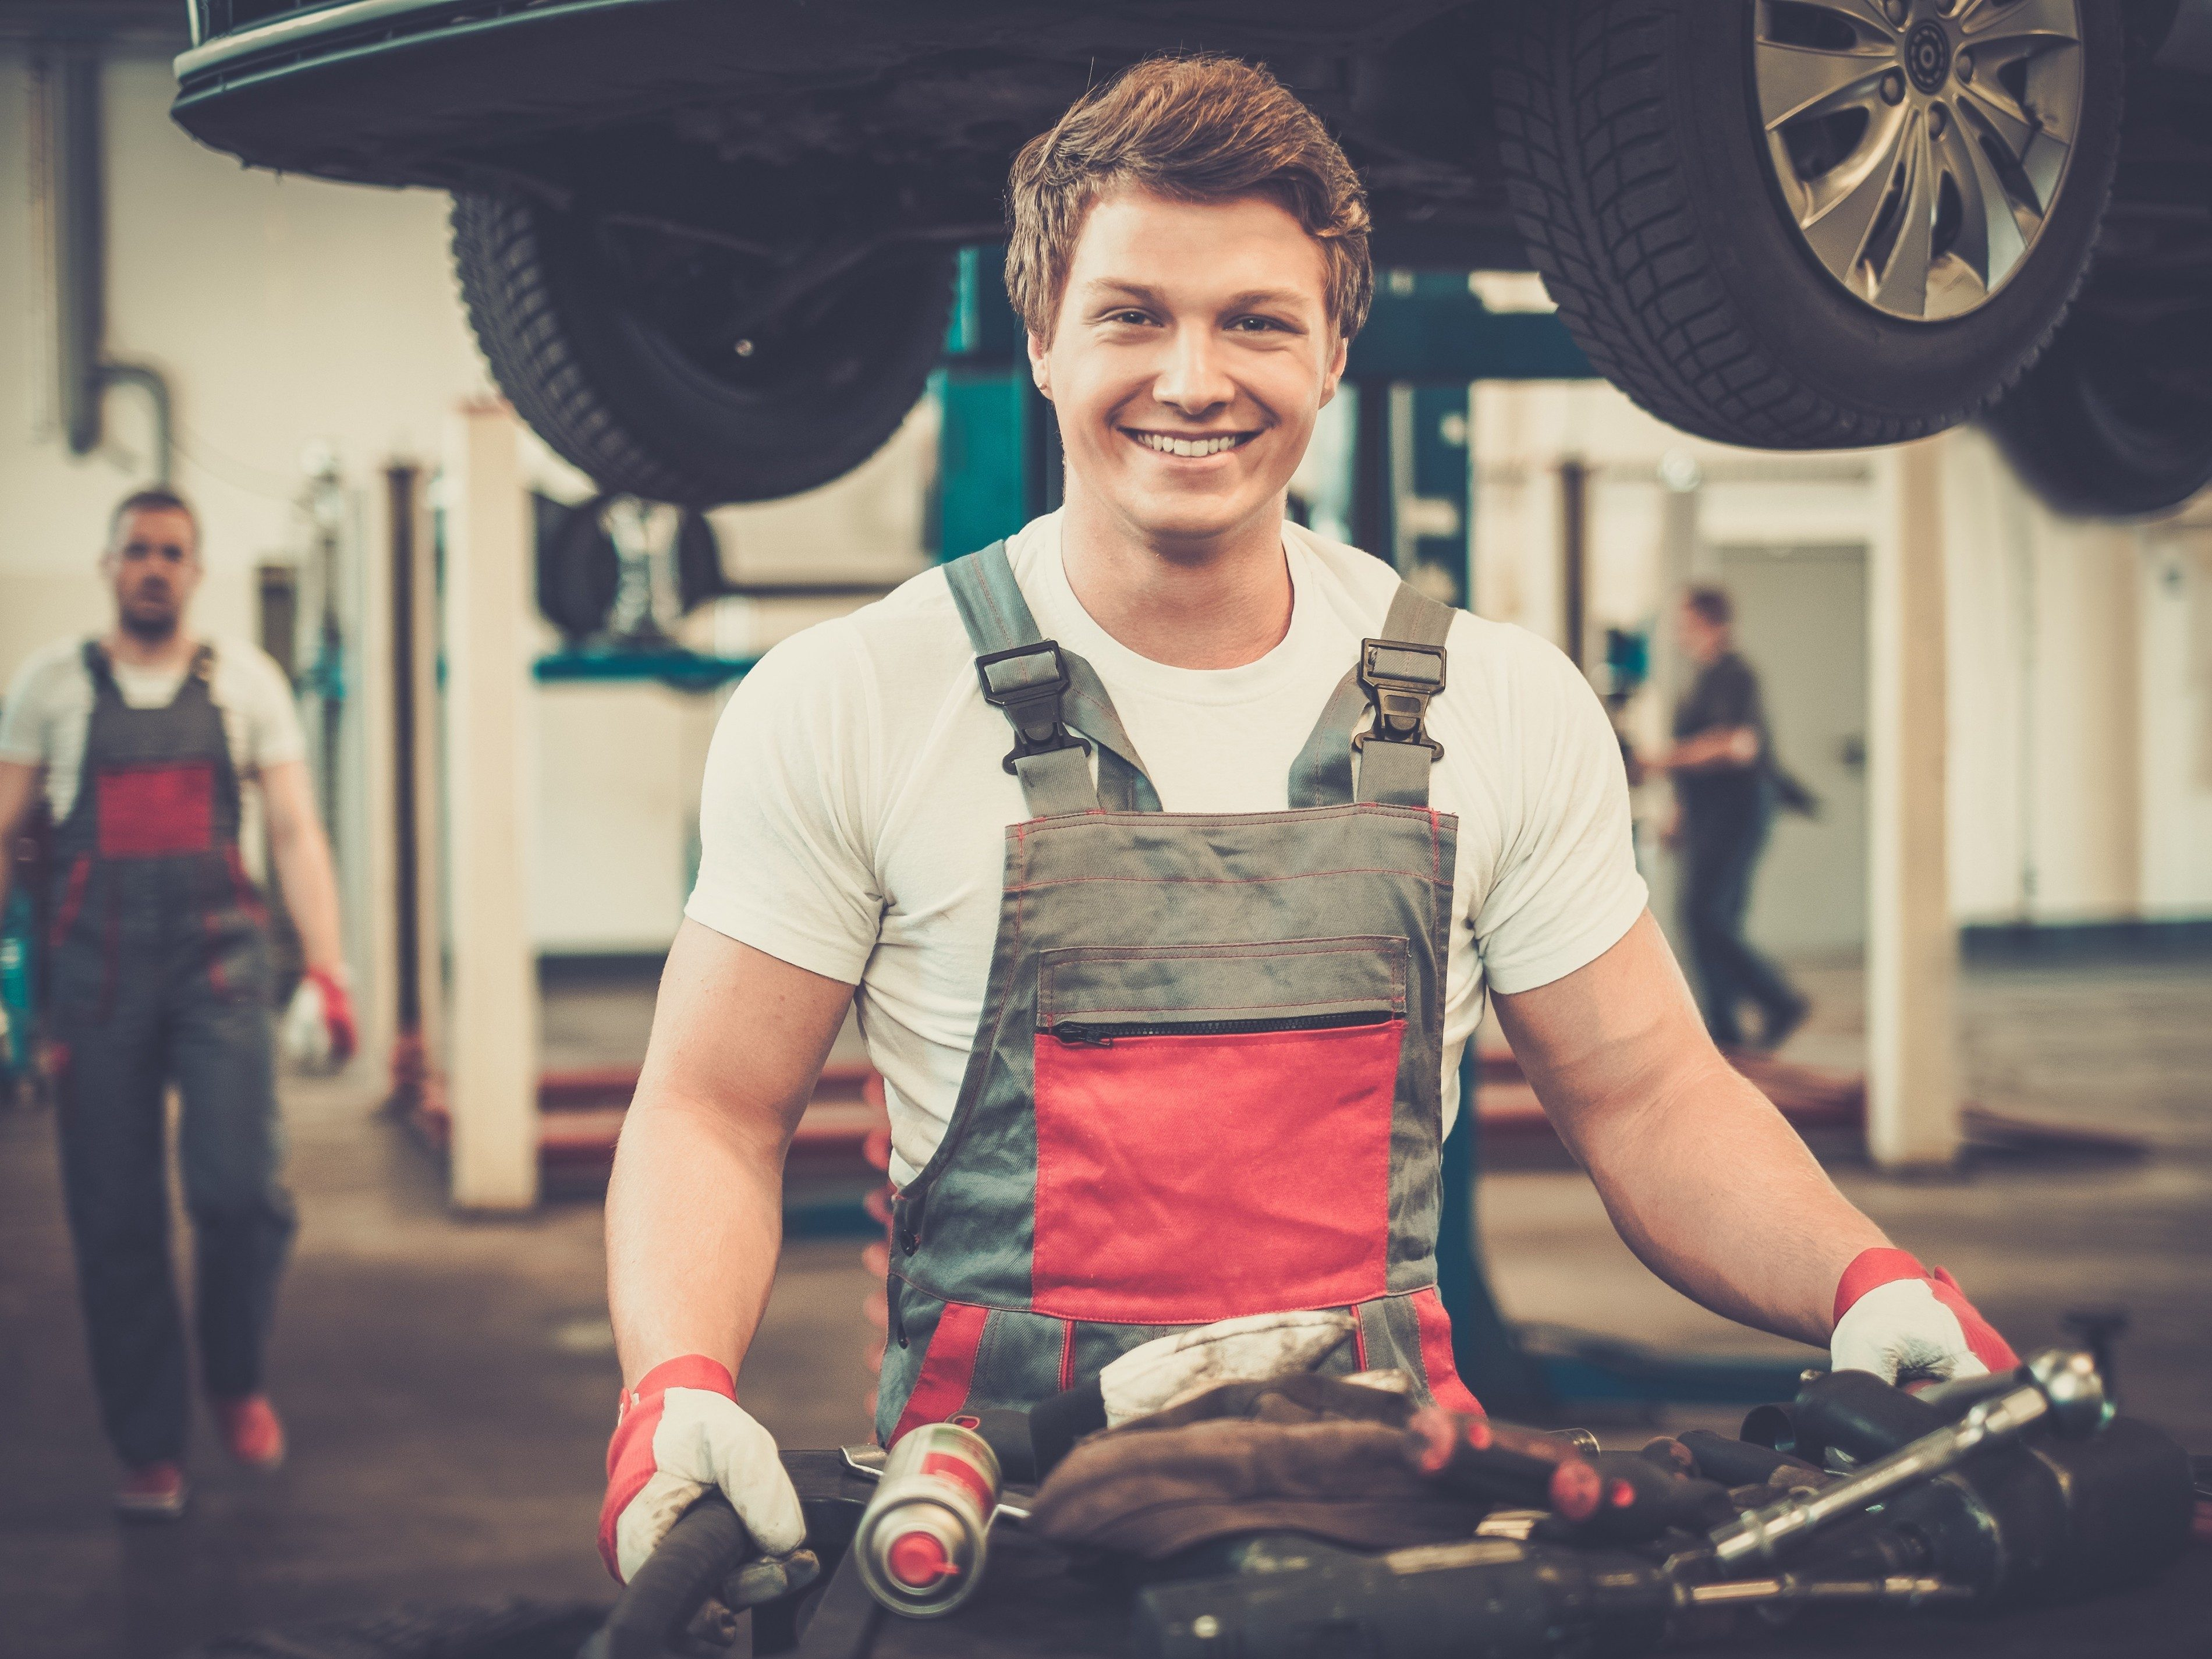 4. Ask Friends and Family for Mechanic Referrals